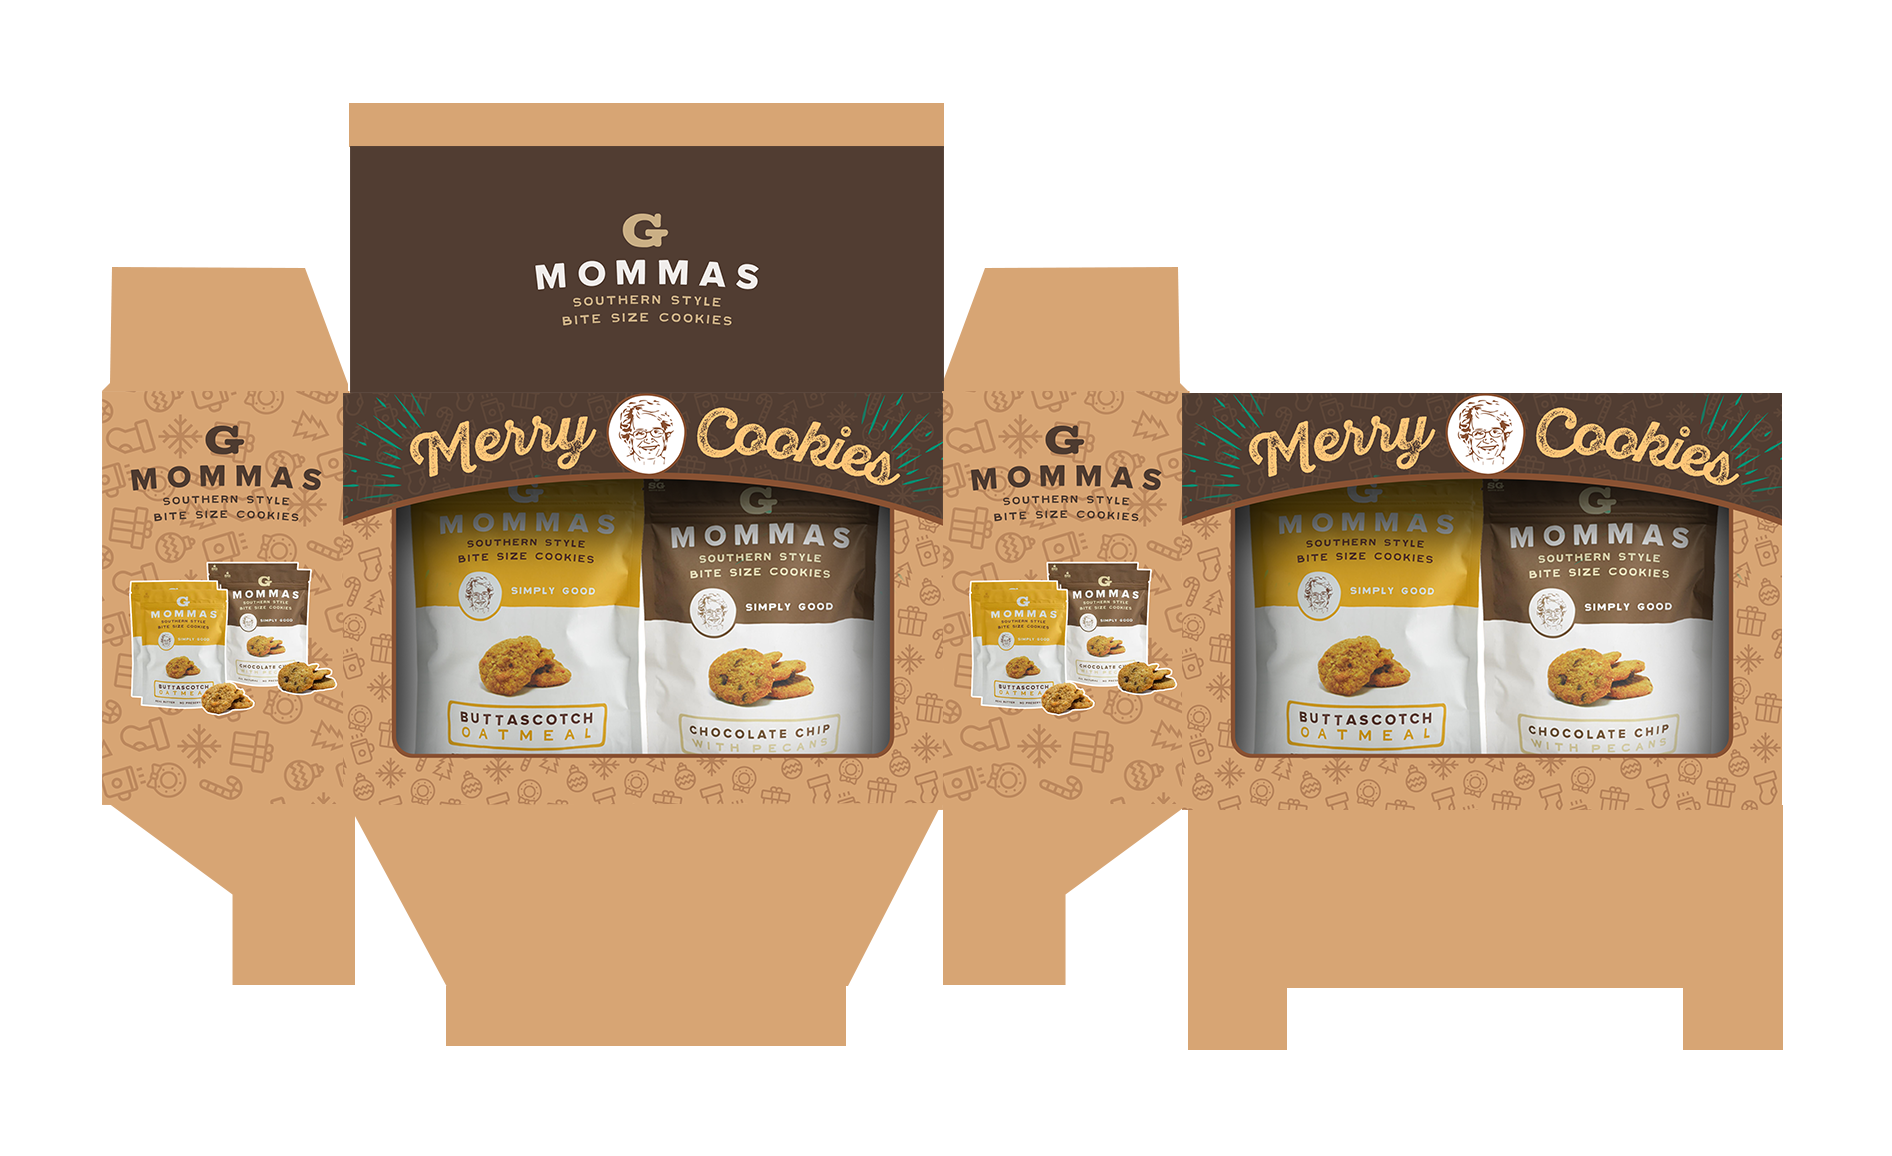 G Mommas Cookies needs a delicious Holiday Gift Box